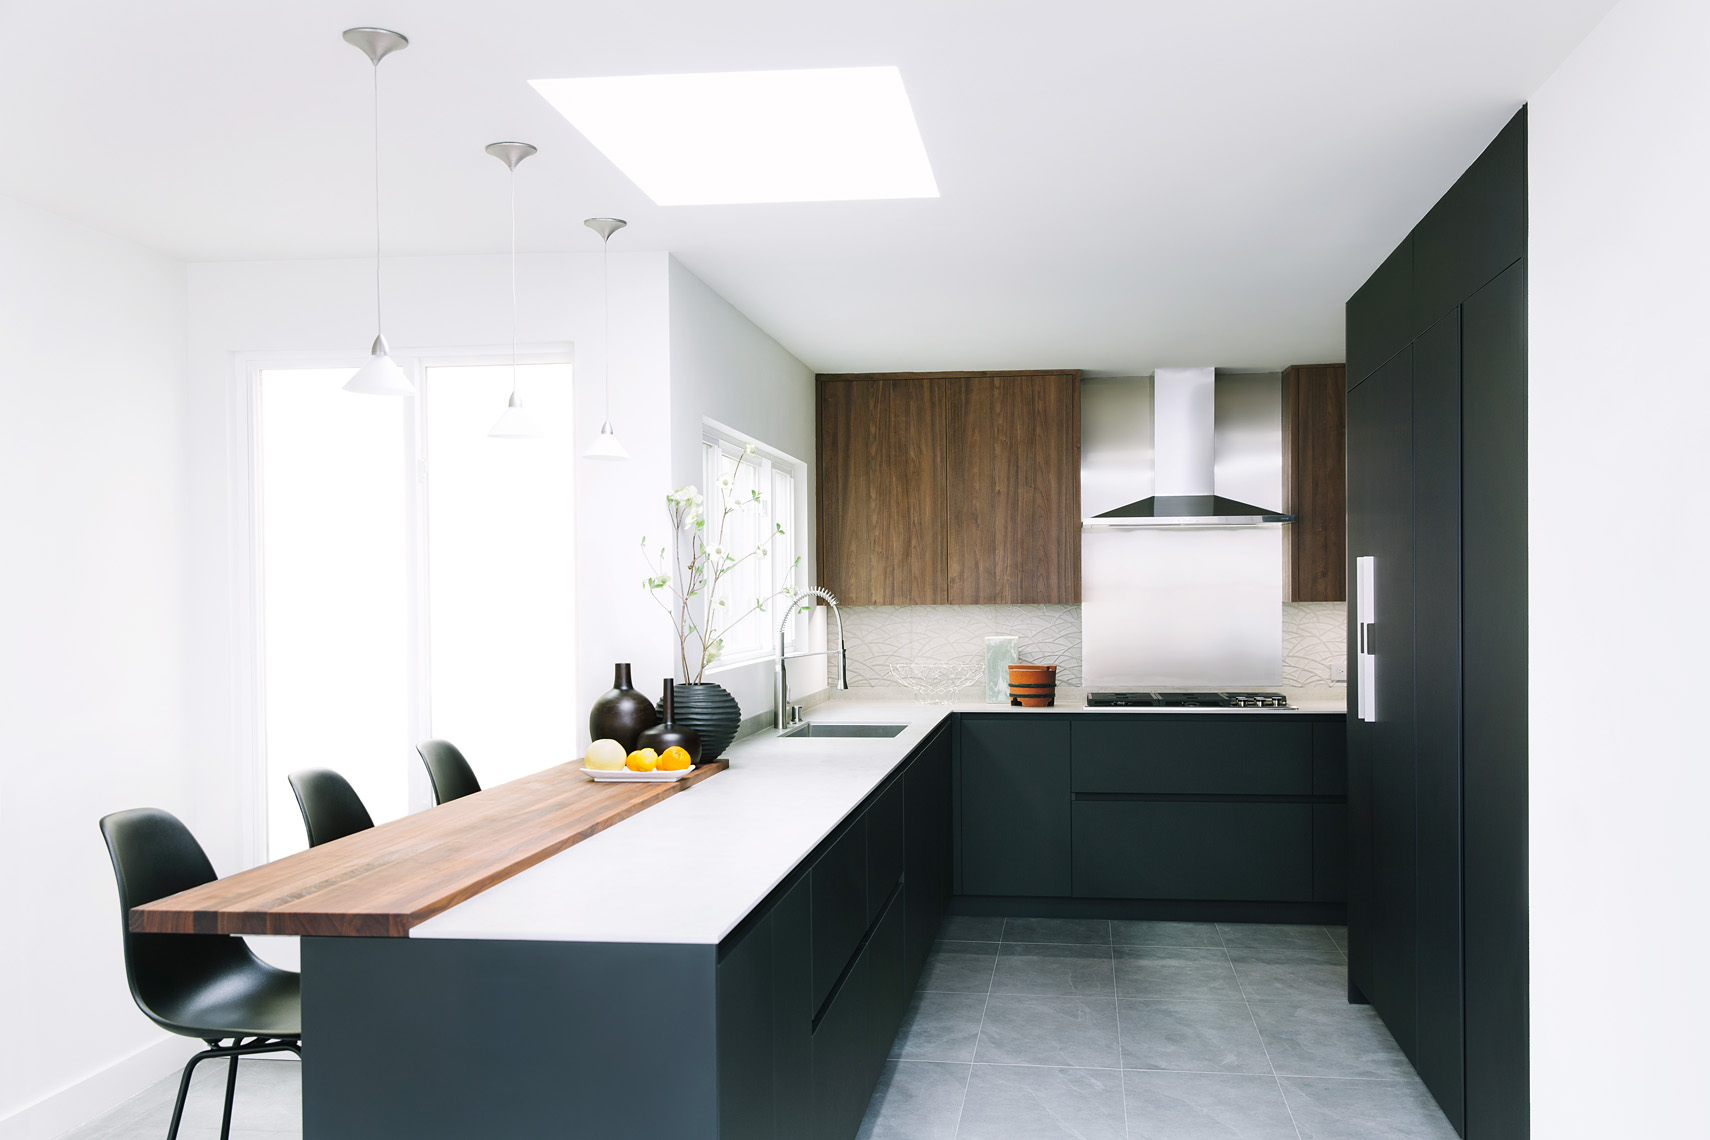 EG_Kitchen_Interior